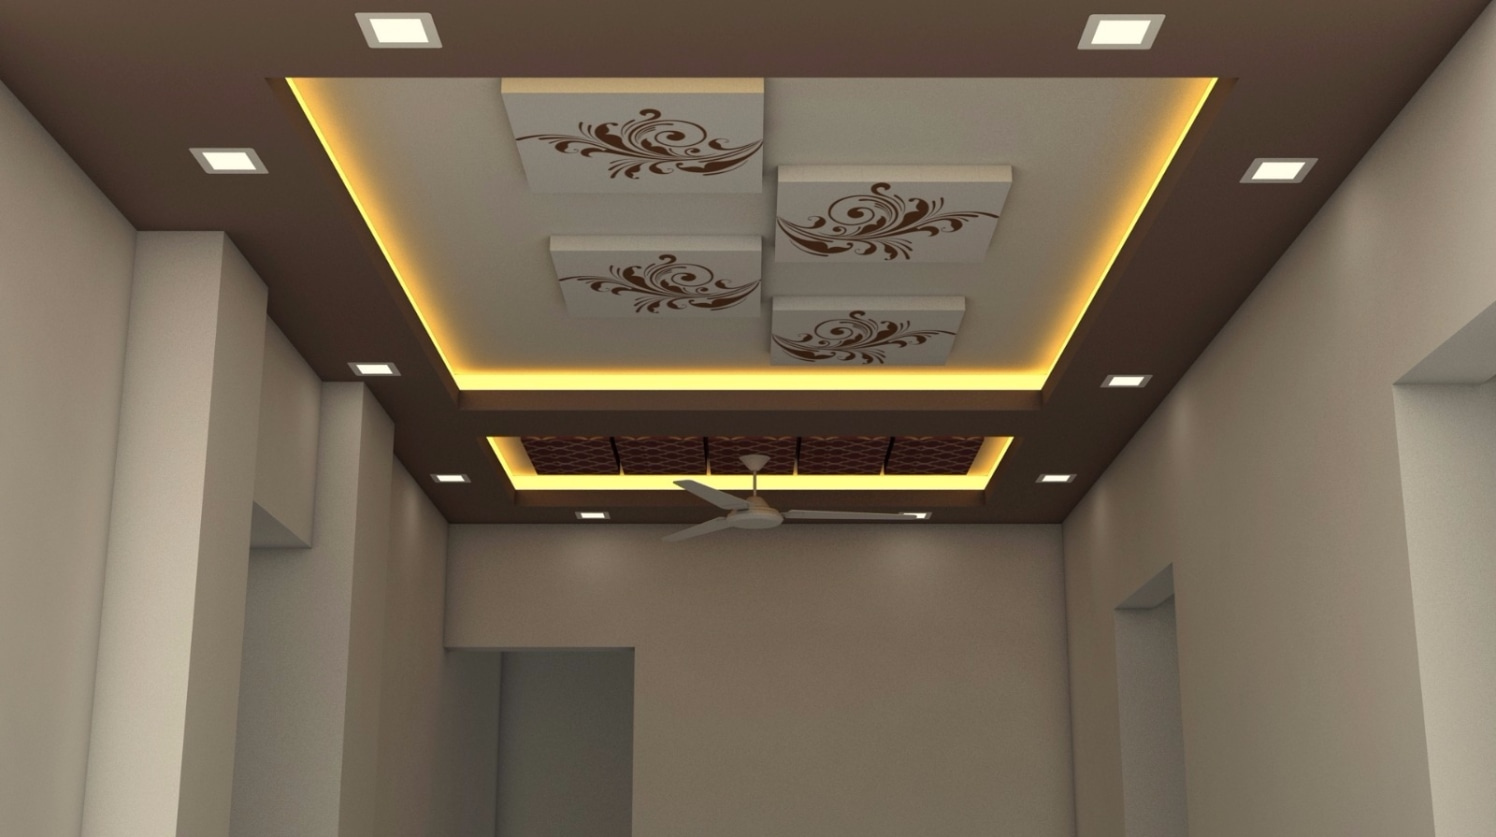 Ceiling with paintings by Talha Naim Momin Modern | Interior Design Photos & Ideas